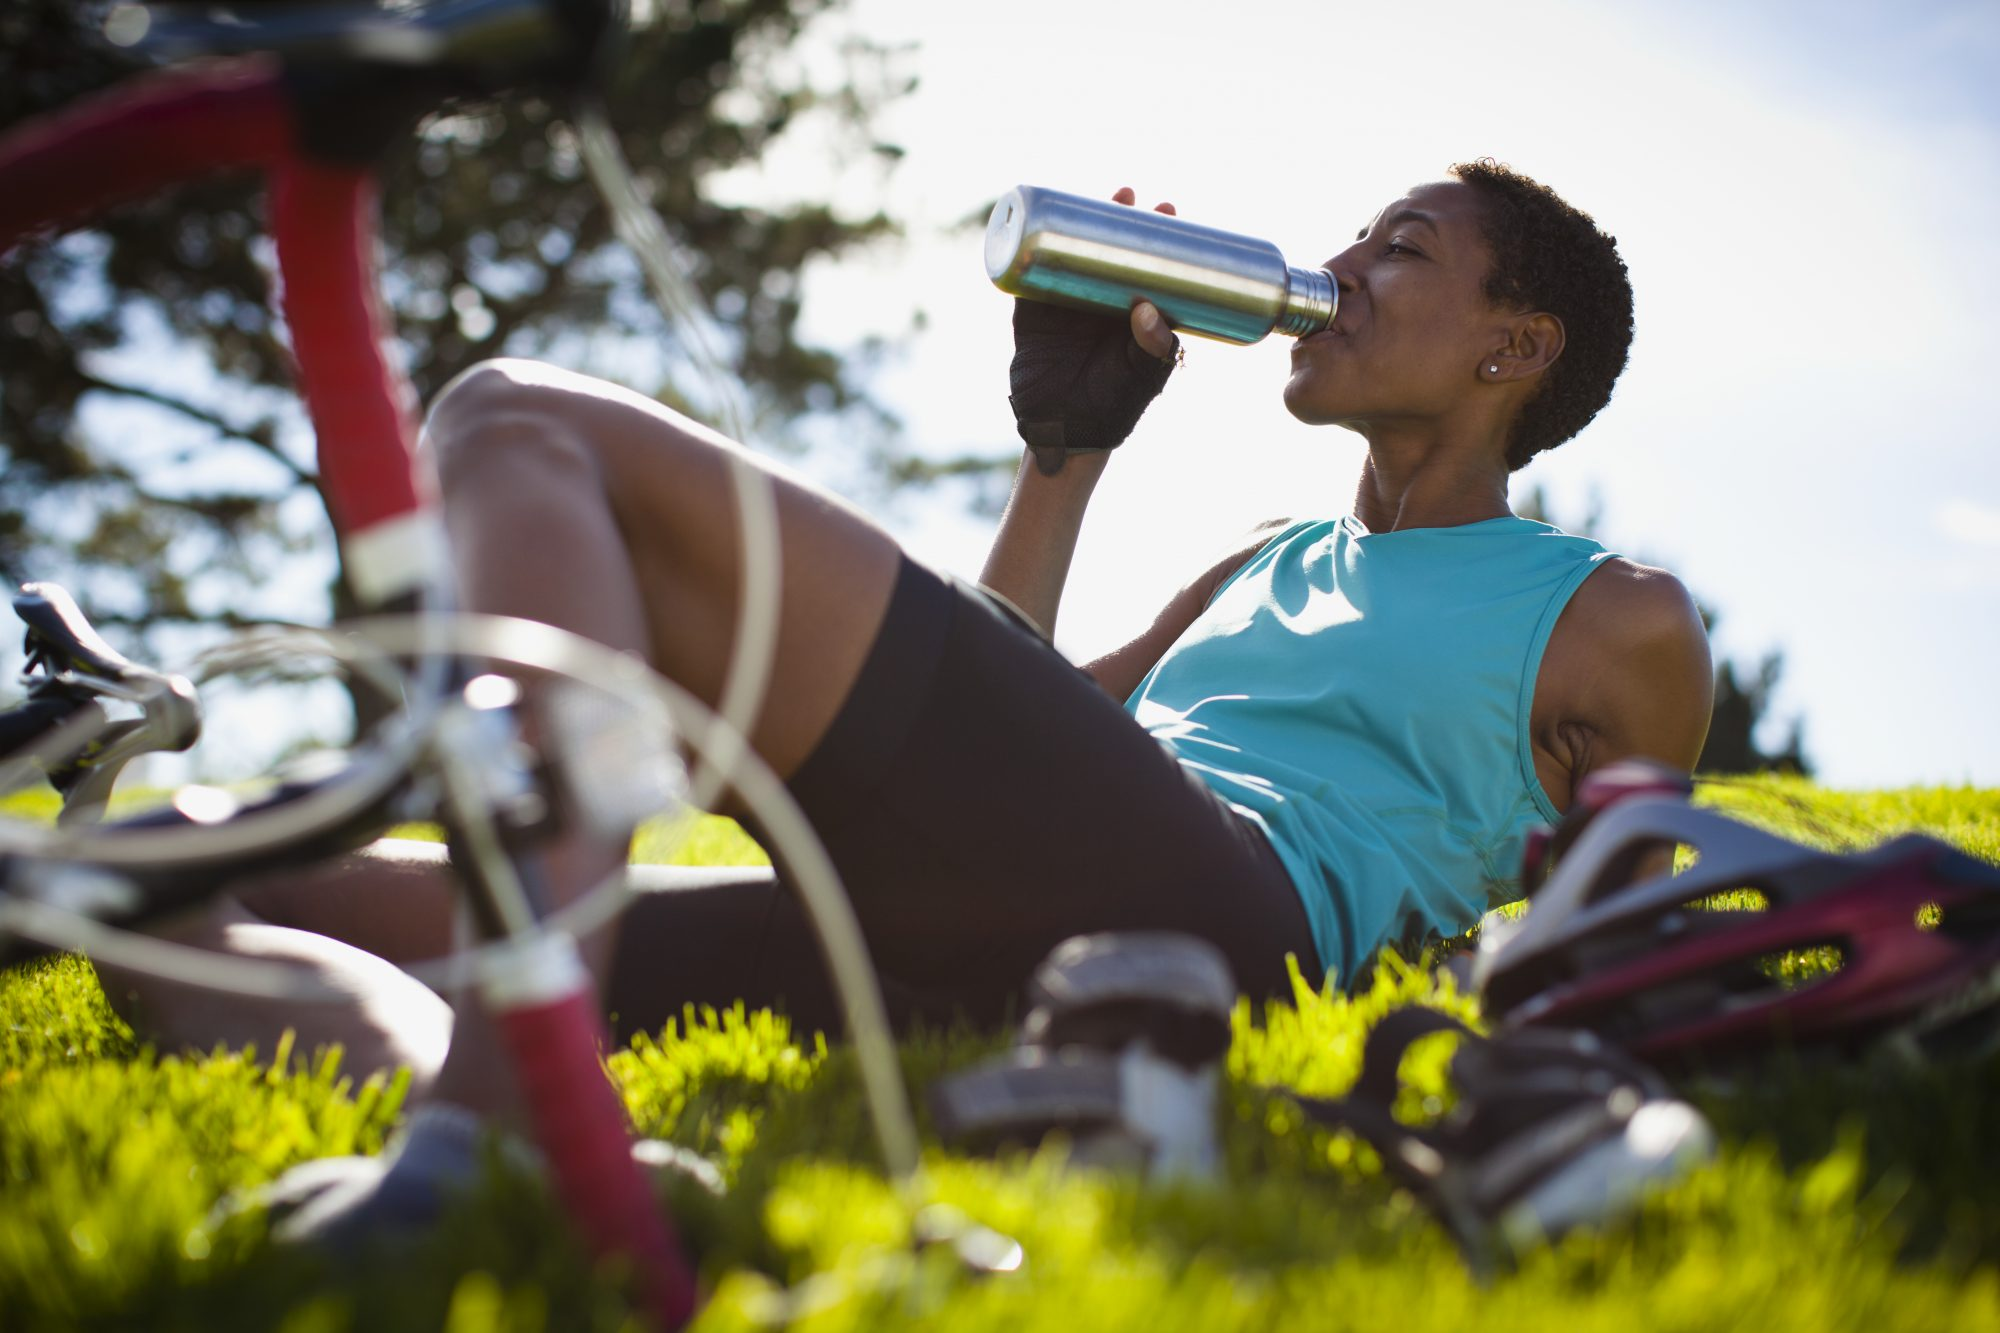 Woman drinking water and sitting in the grass after a bike ride out